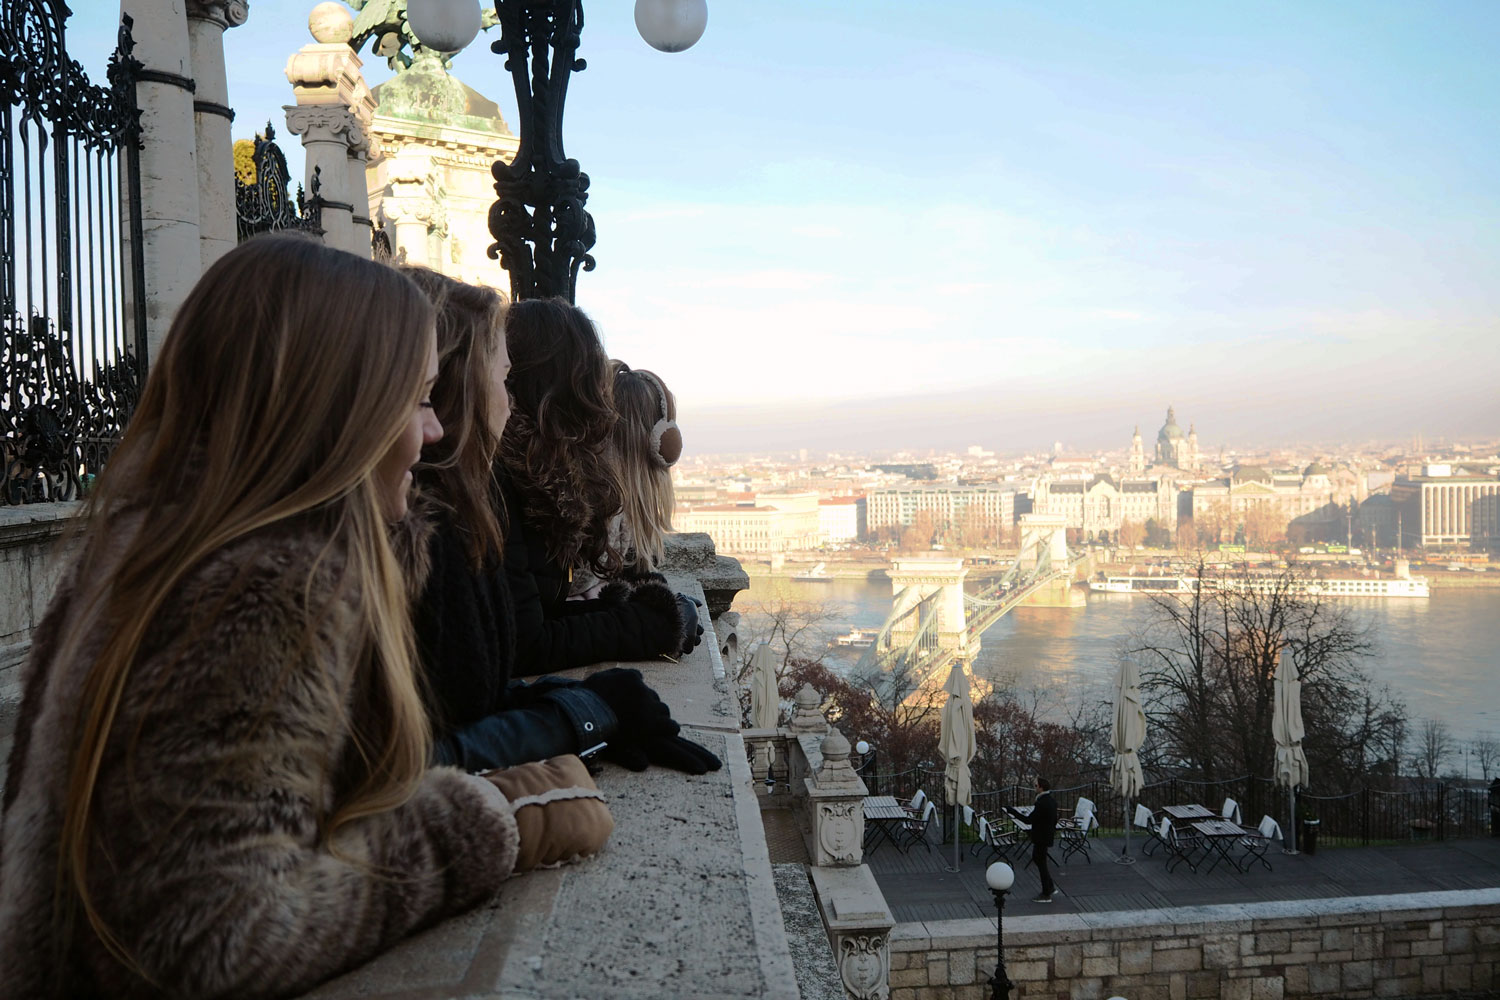 girls-viewing-budapest-travel-blog-zoe-newlove